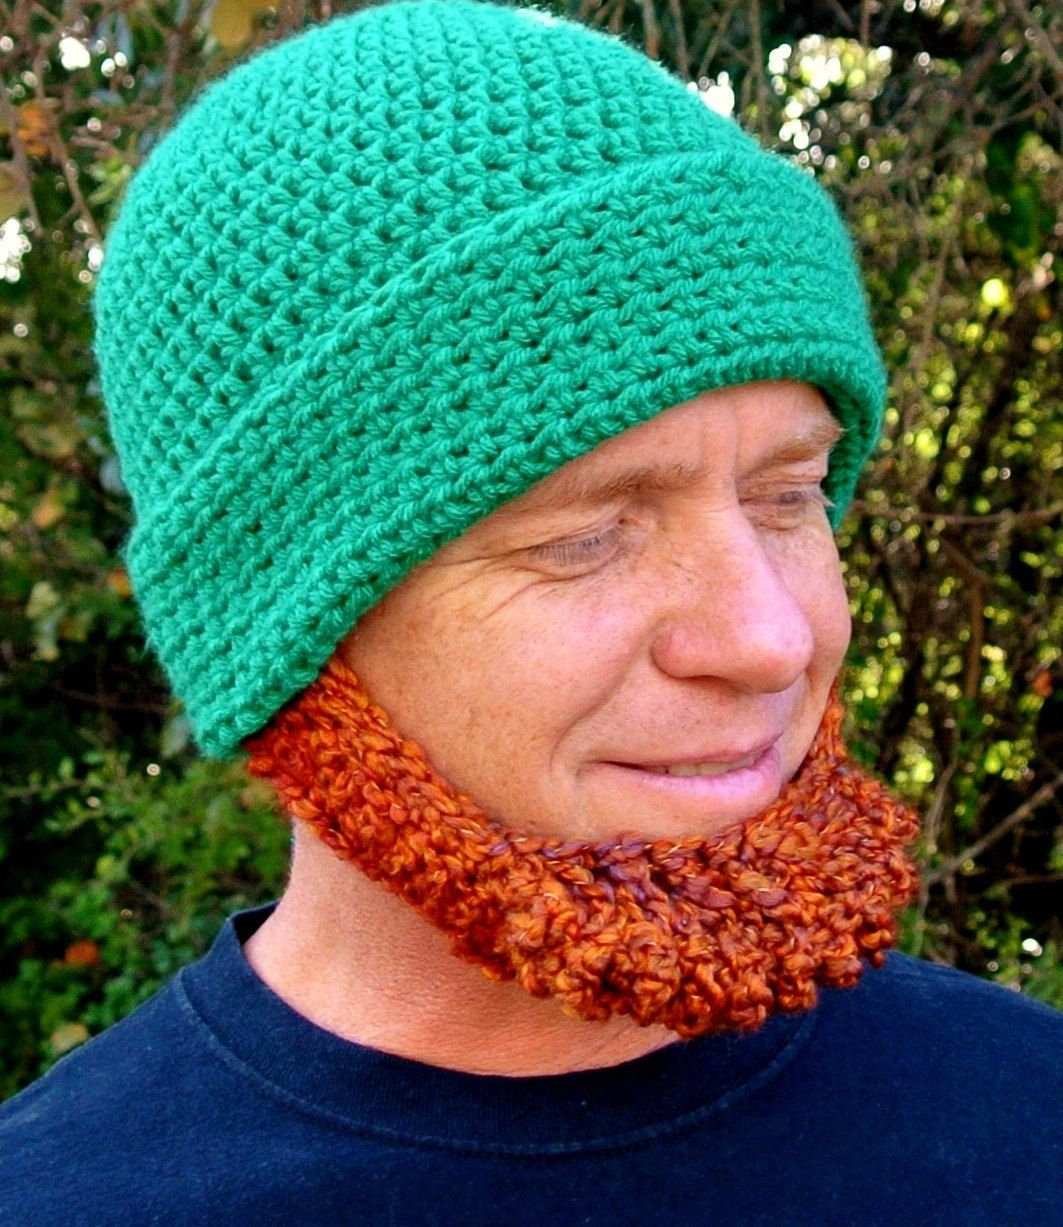 irish crochet hat patterns with red chin strap   Request a custom ...